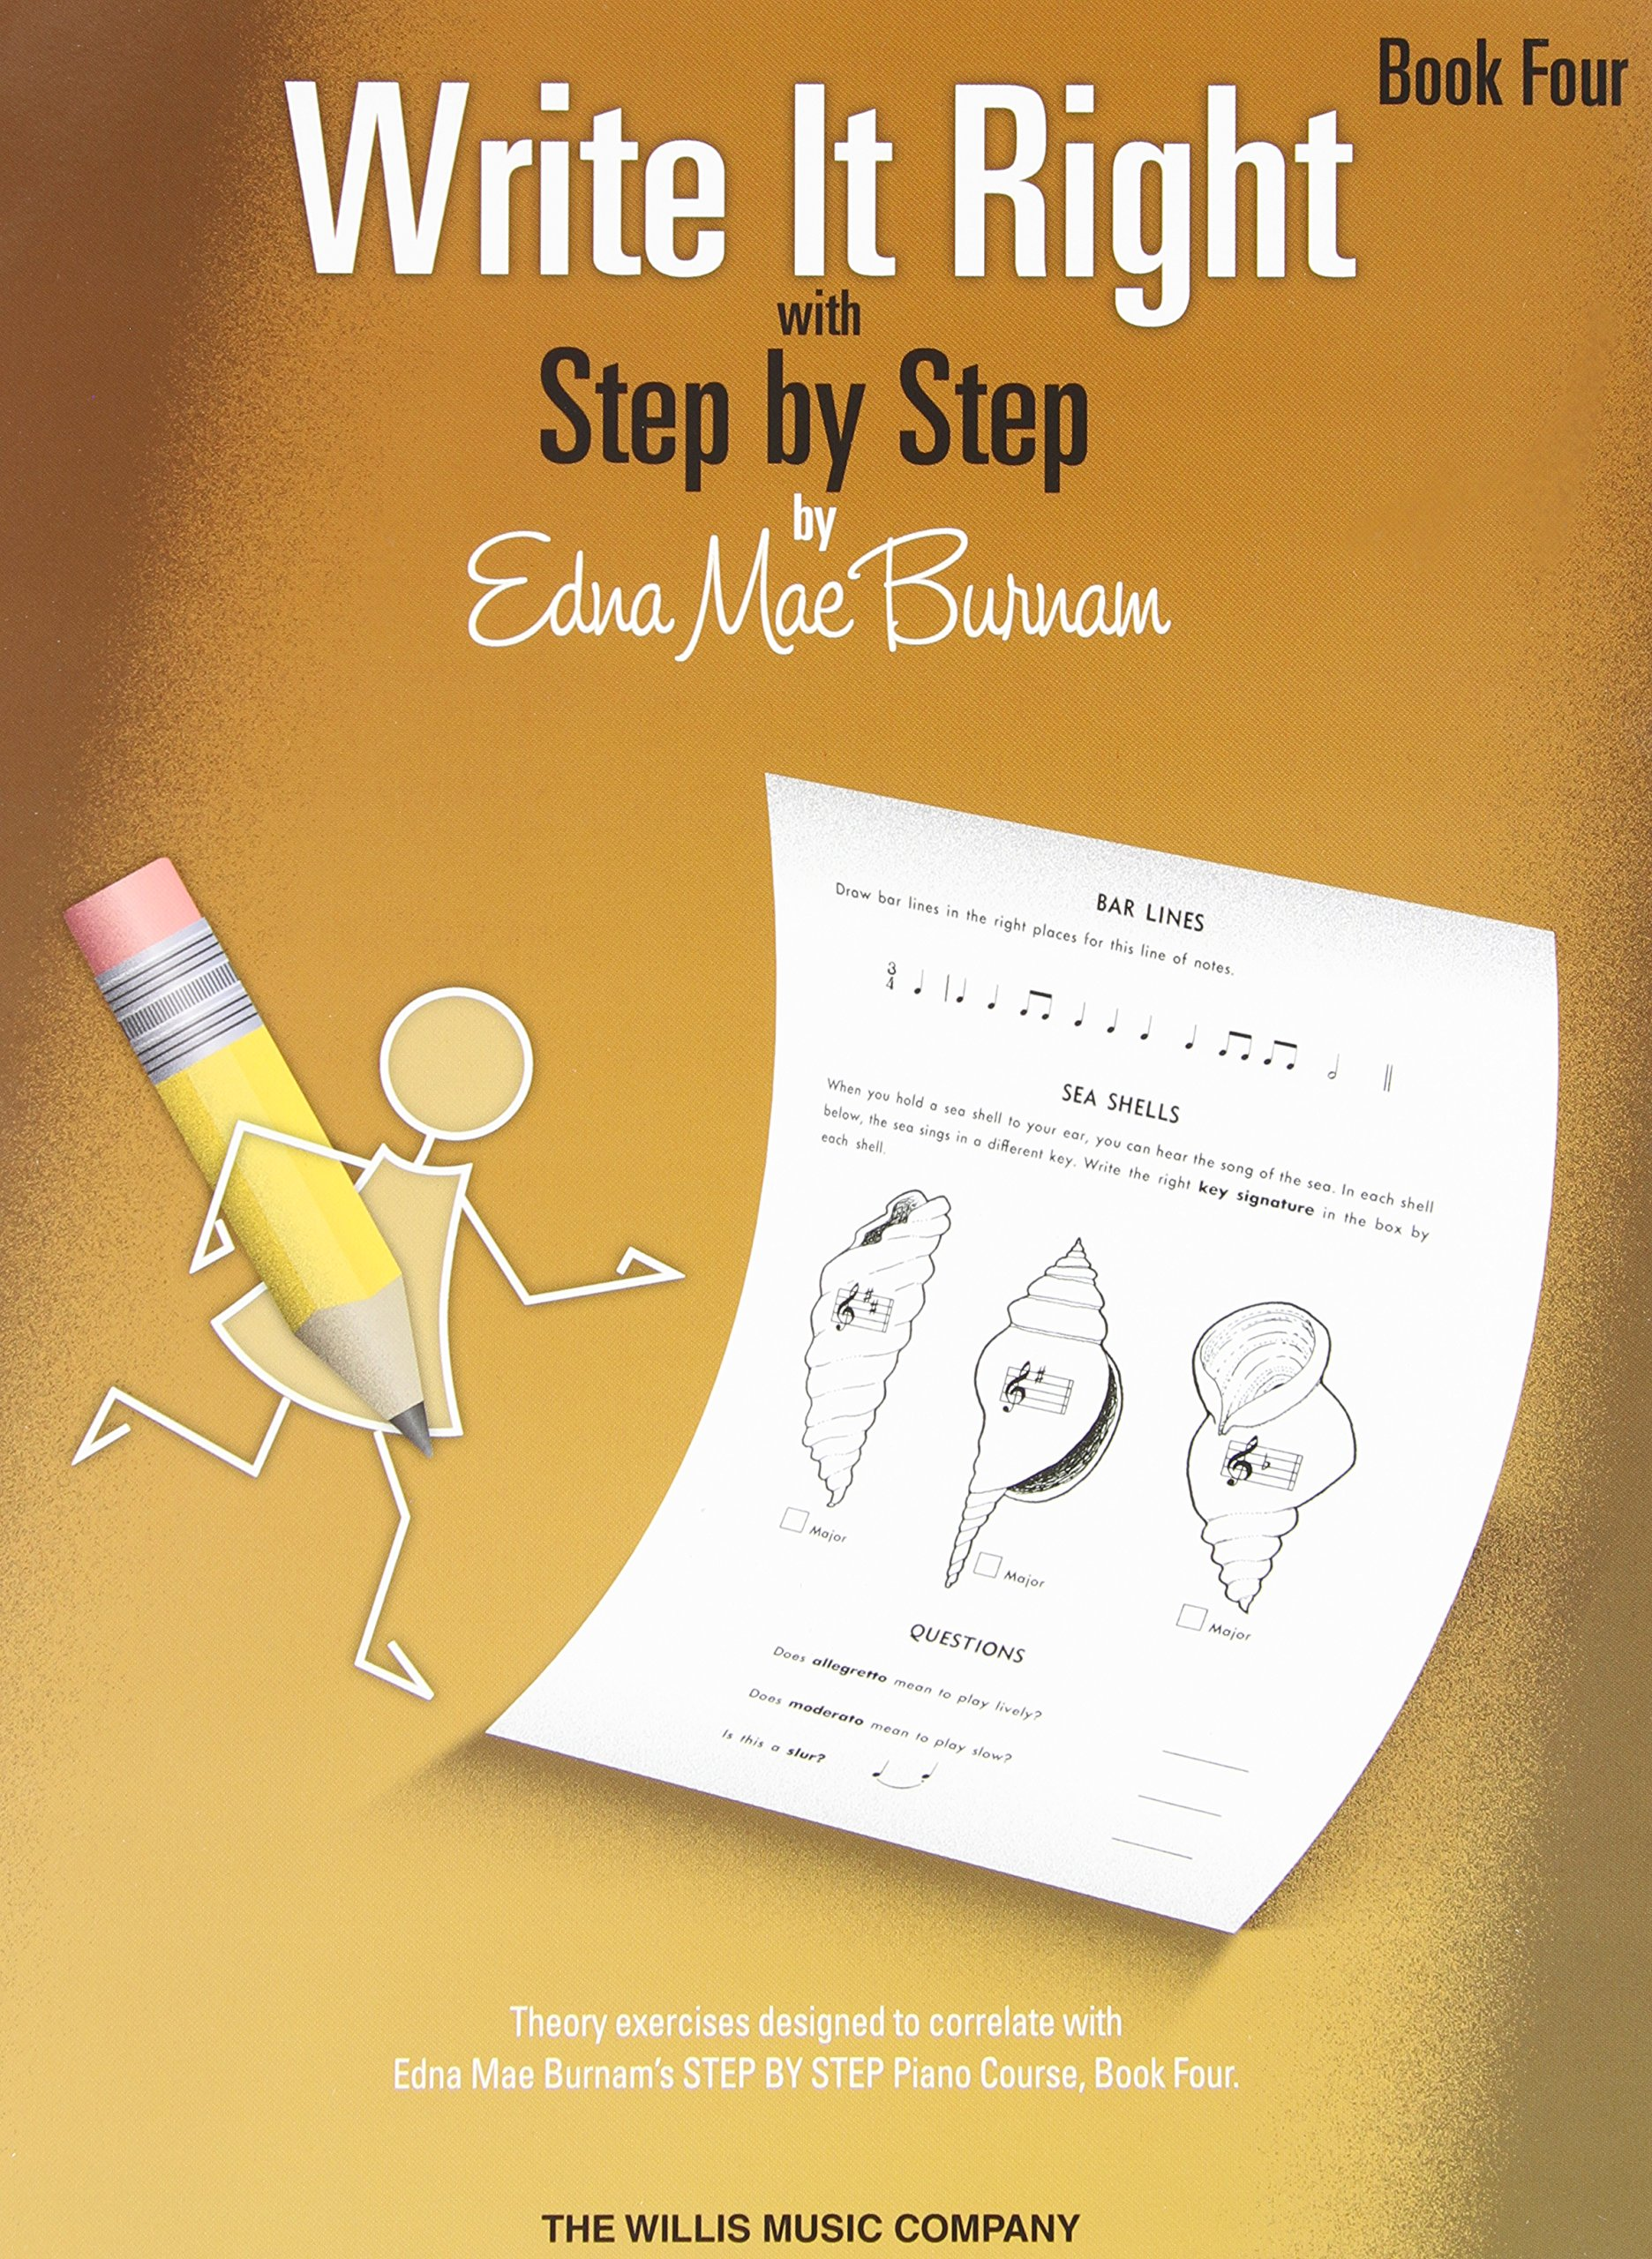 write-it-right-book-4-written-lessons-designed-to-correlate-exactly-with-edna-mae-burnam-s-step-by-step-mid-elementary-step-by-step-hal-leonard